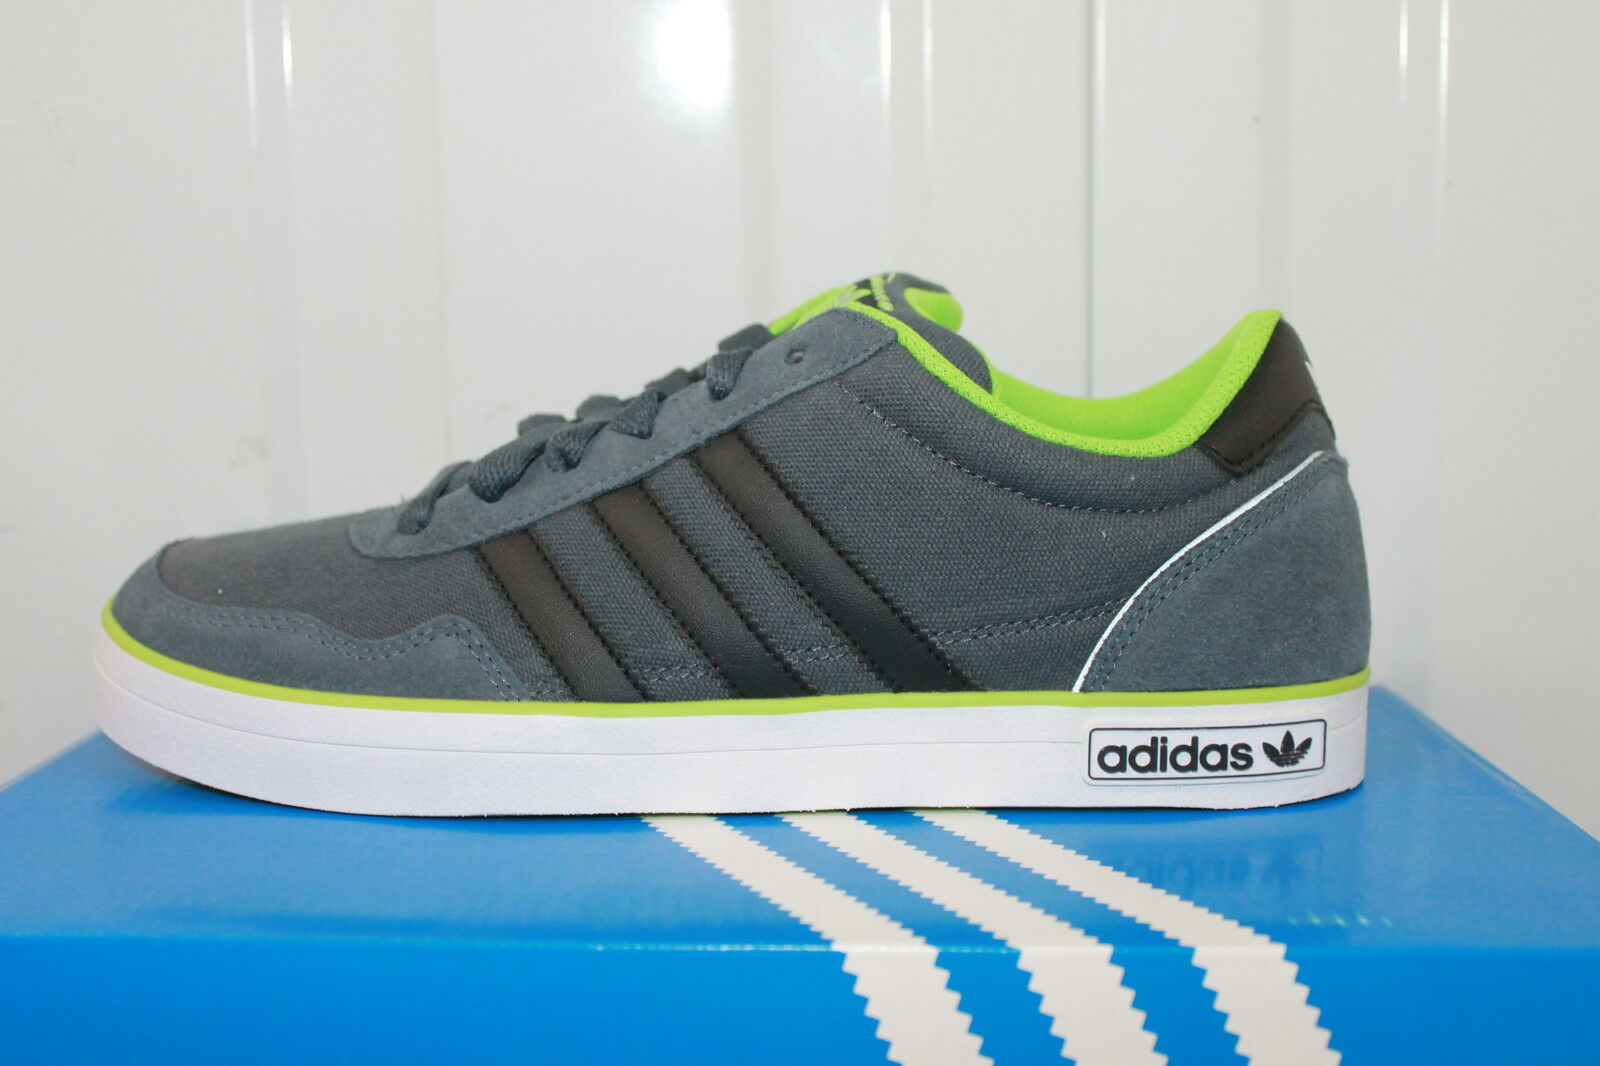 ADIDAS ORIGINALS V400 DARK grau   schwarz MEN,S TRAINERS Q33756